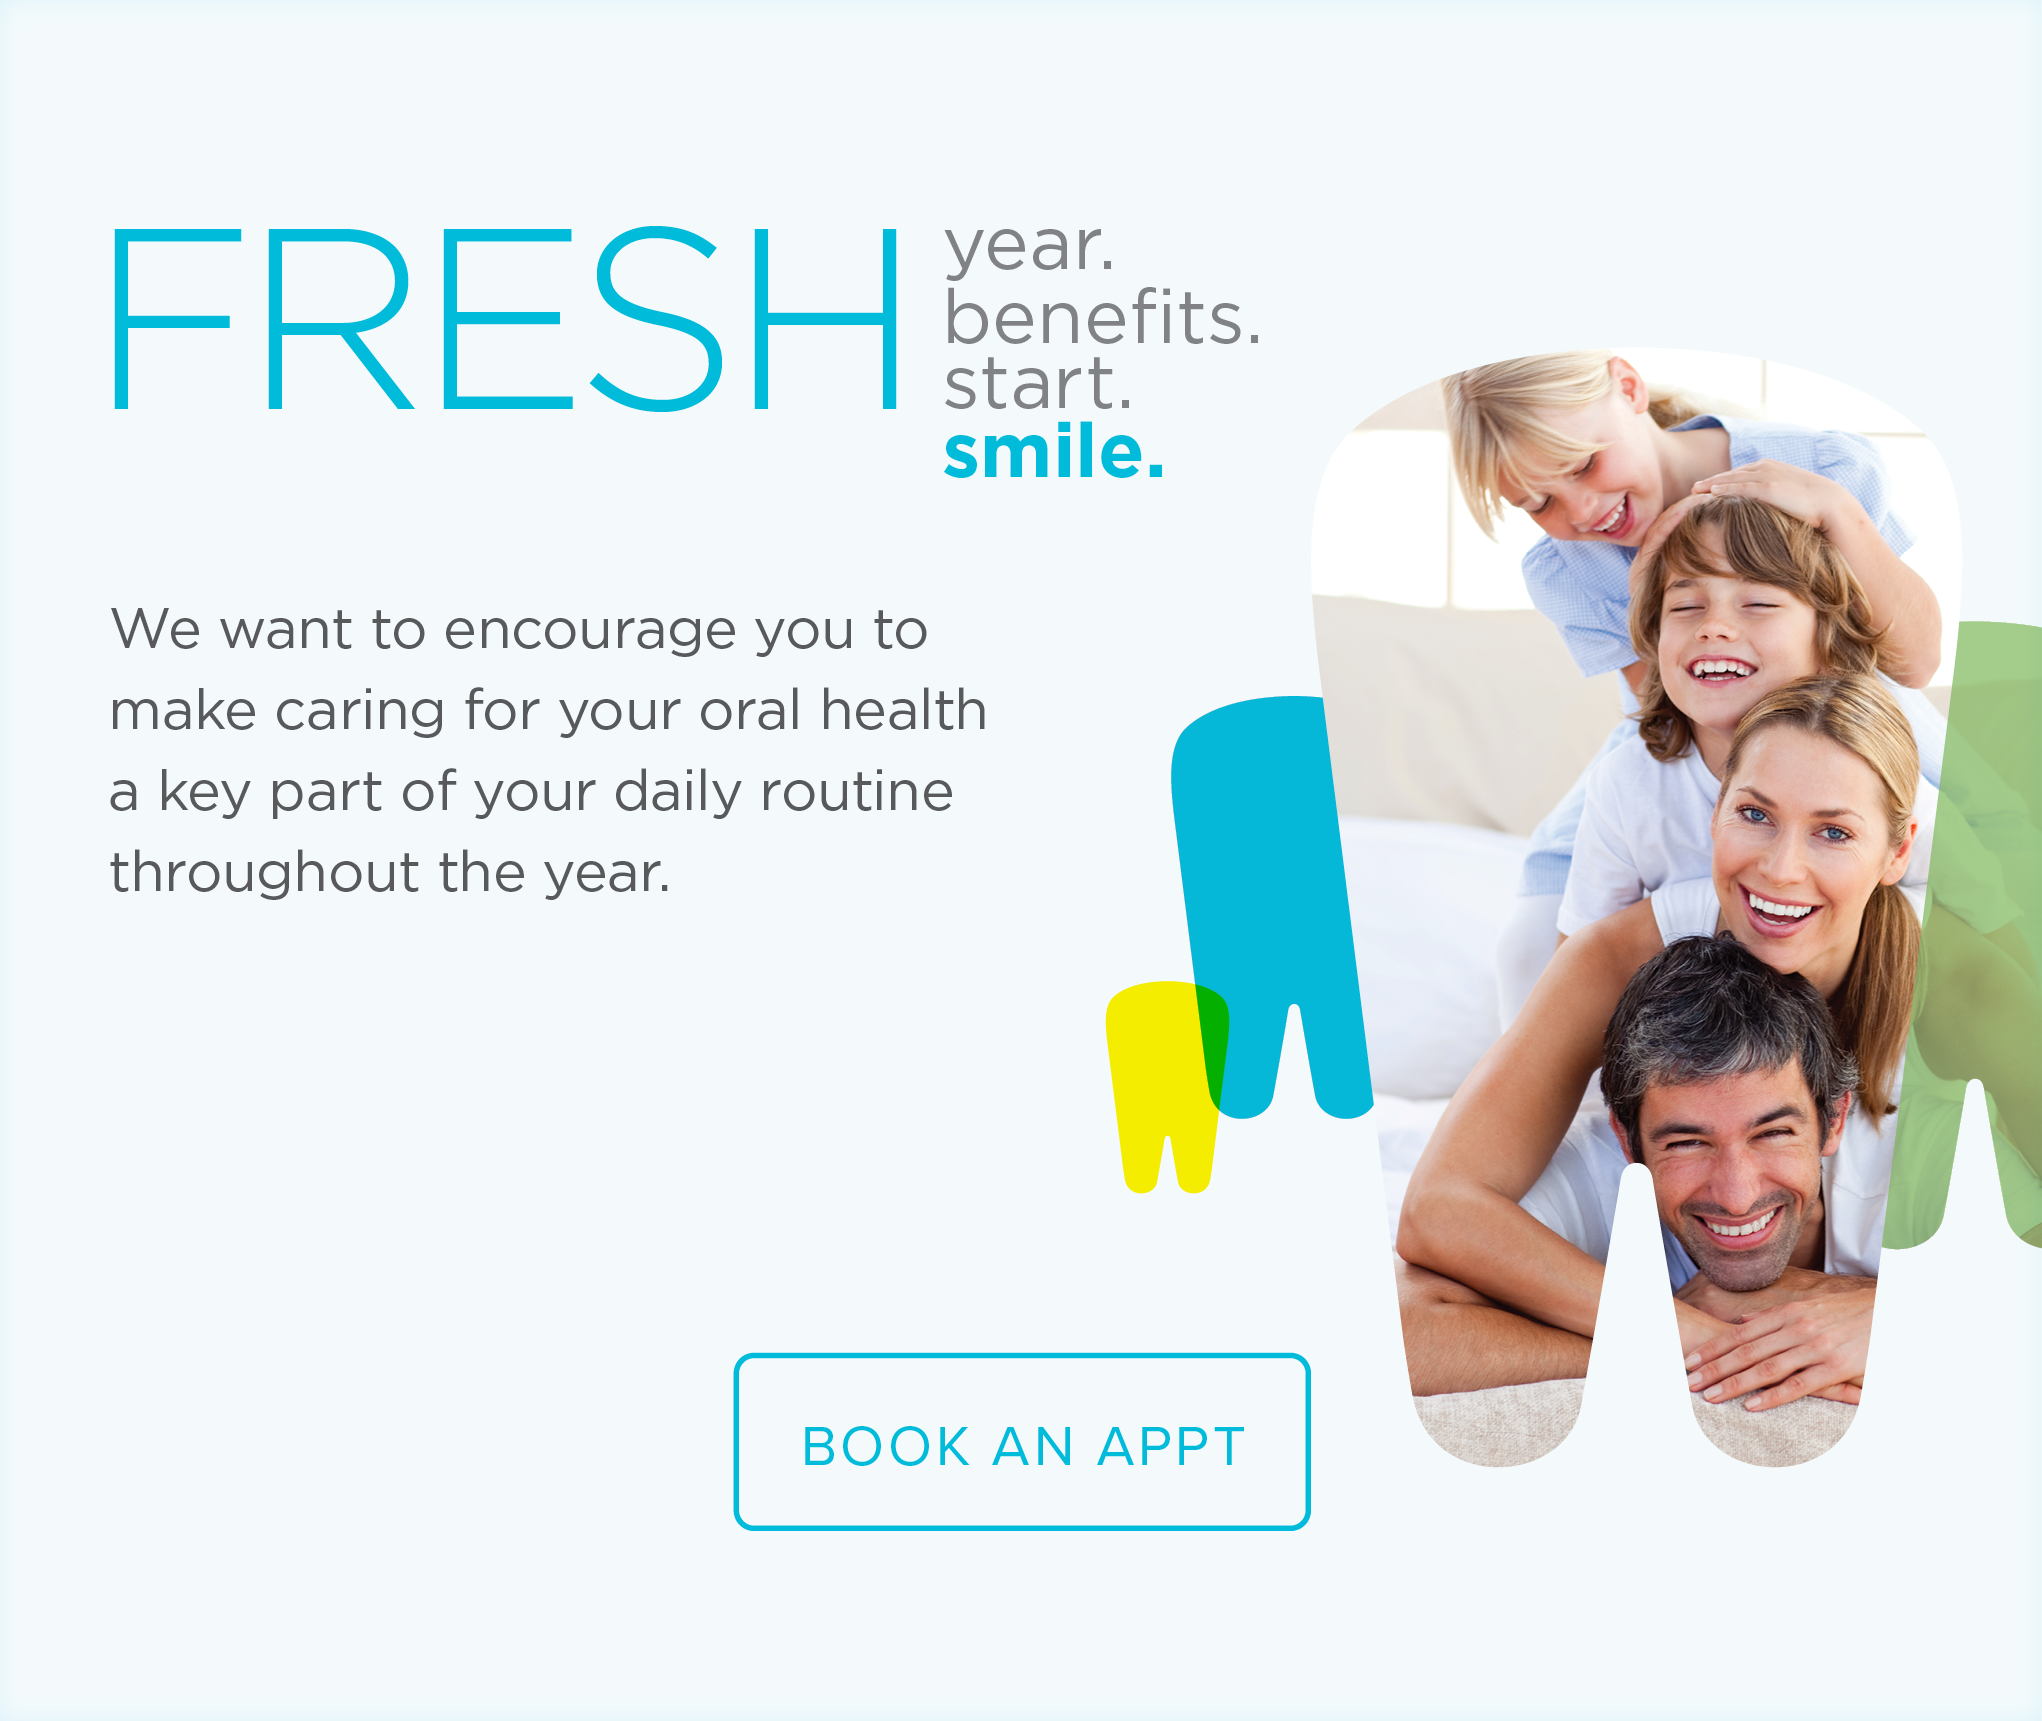 Visalia  Modern Dentistry - Make the Most of Your Benefits